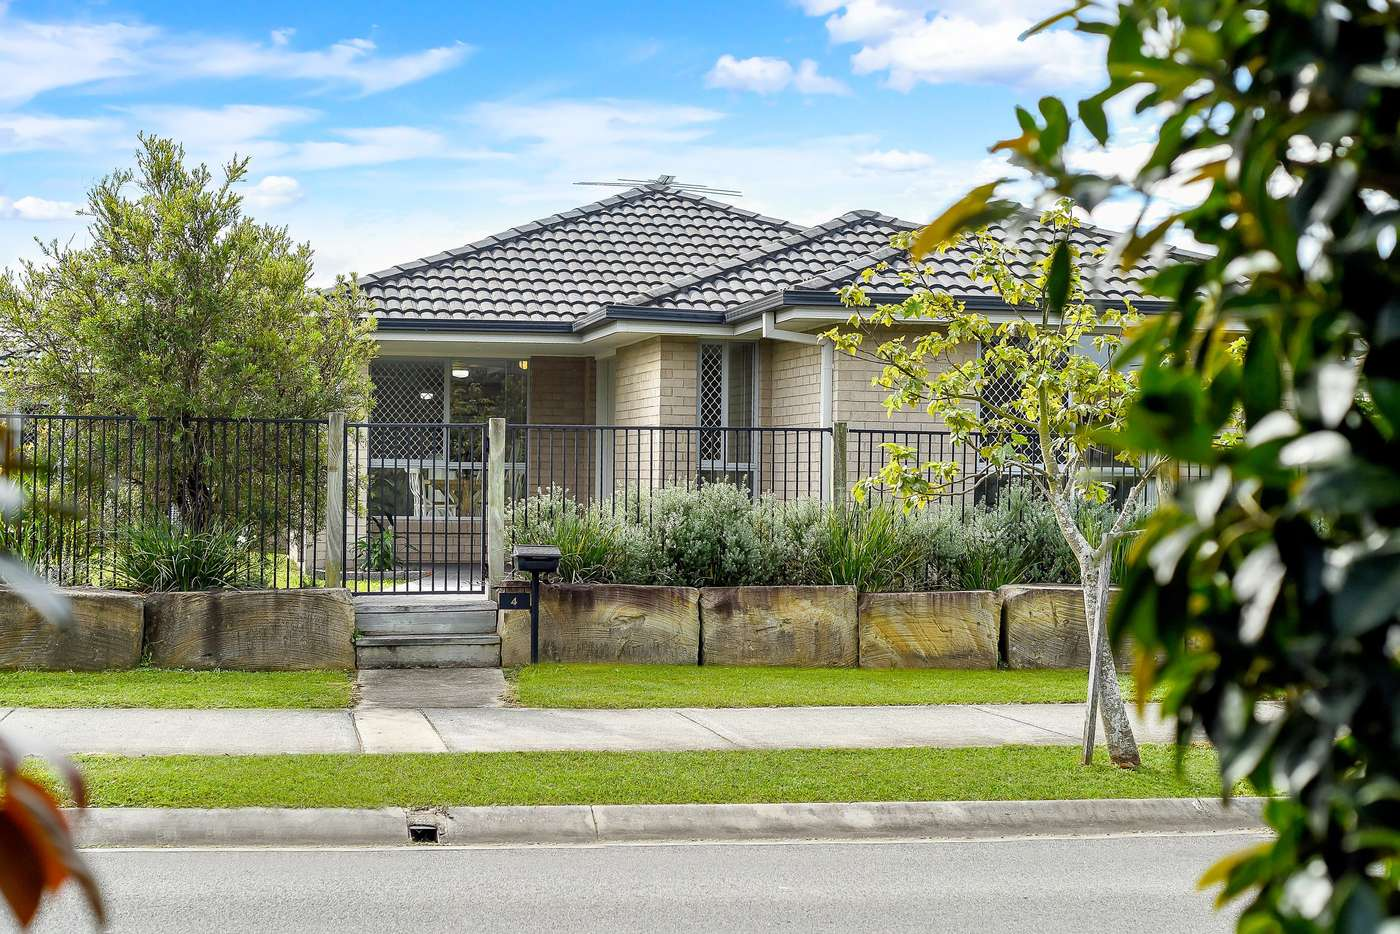 Main view of Homely house listing, 4 Dauntless Lane, Bray Park QLD 4500